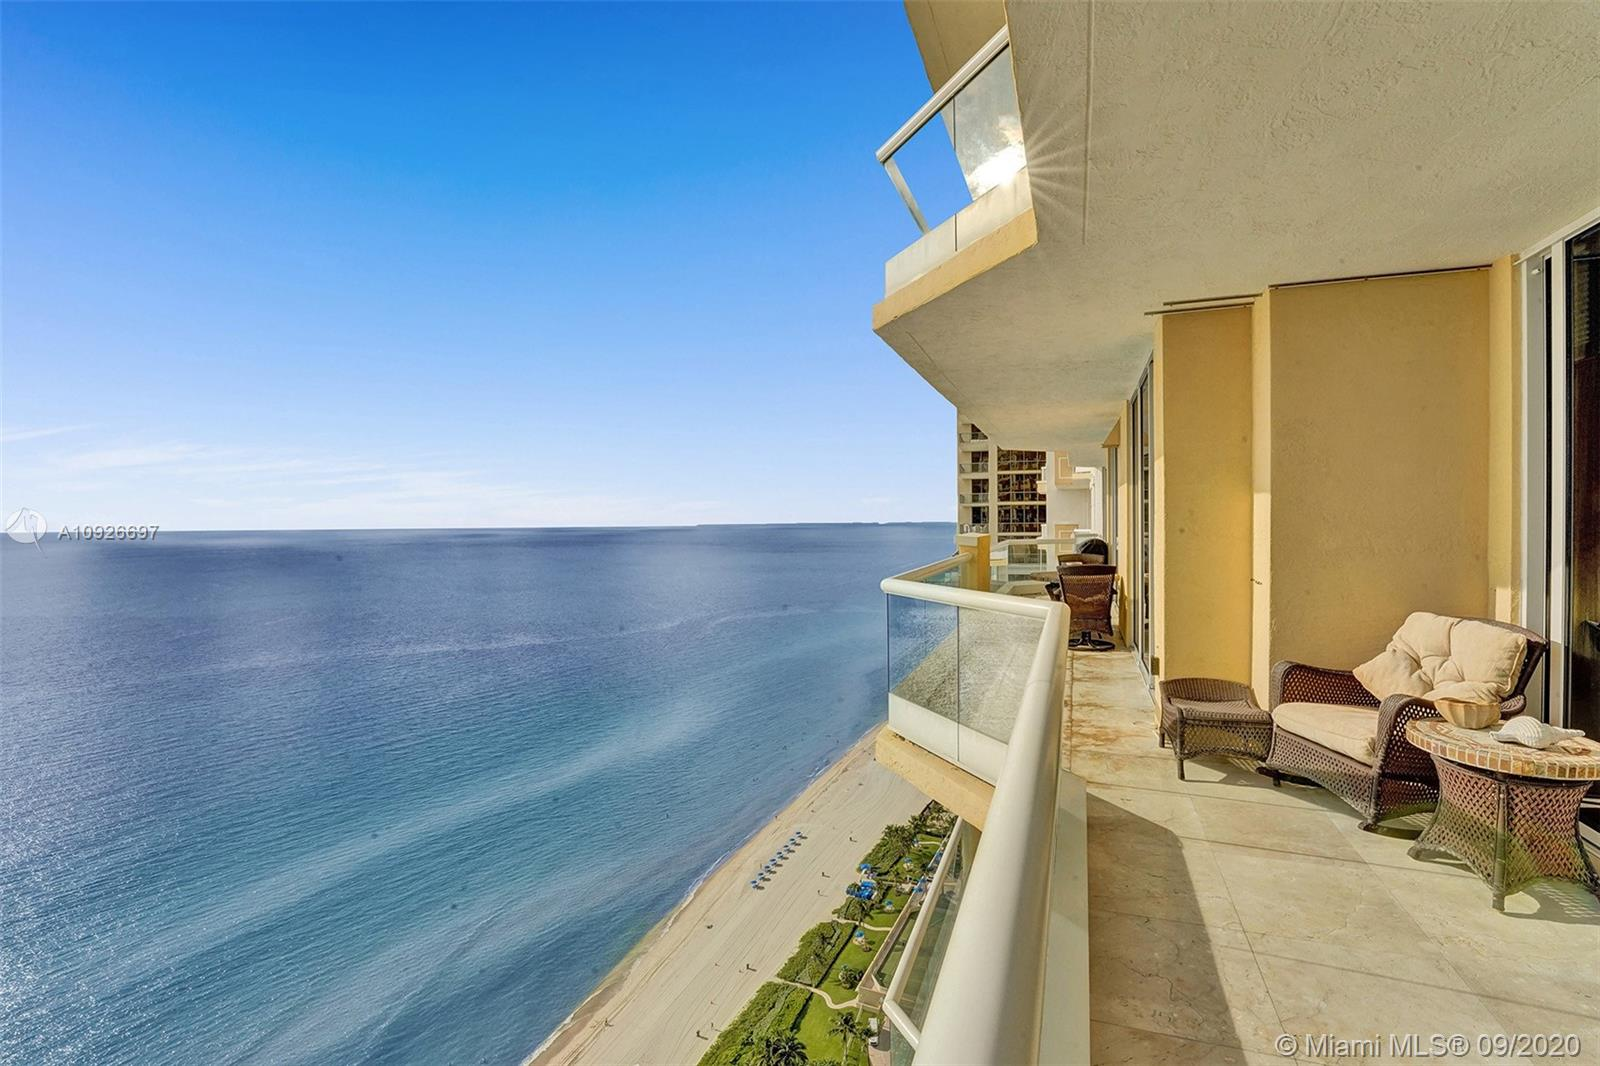 17875 Collins Ave, Unit #4003 Luxury Real Estate